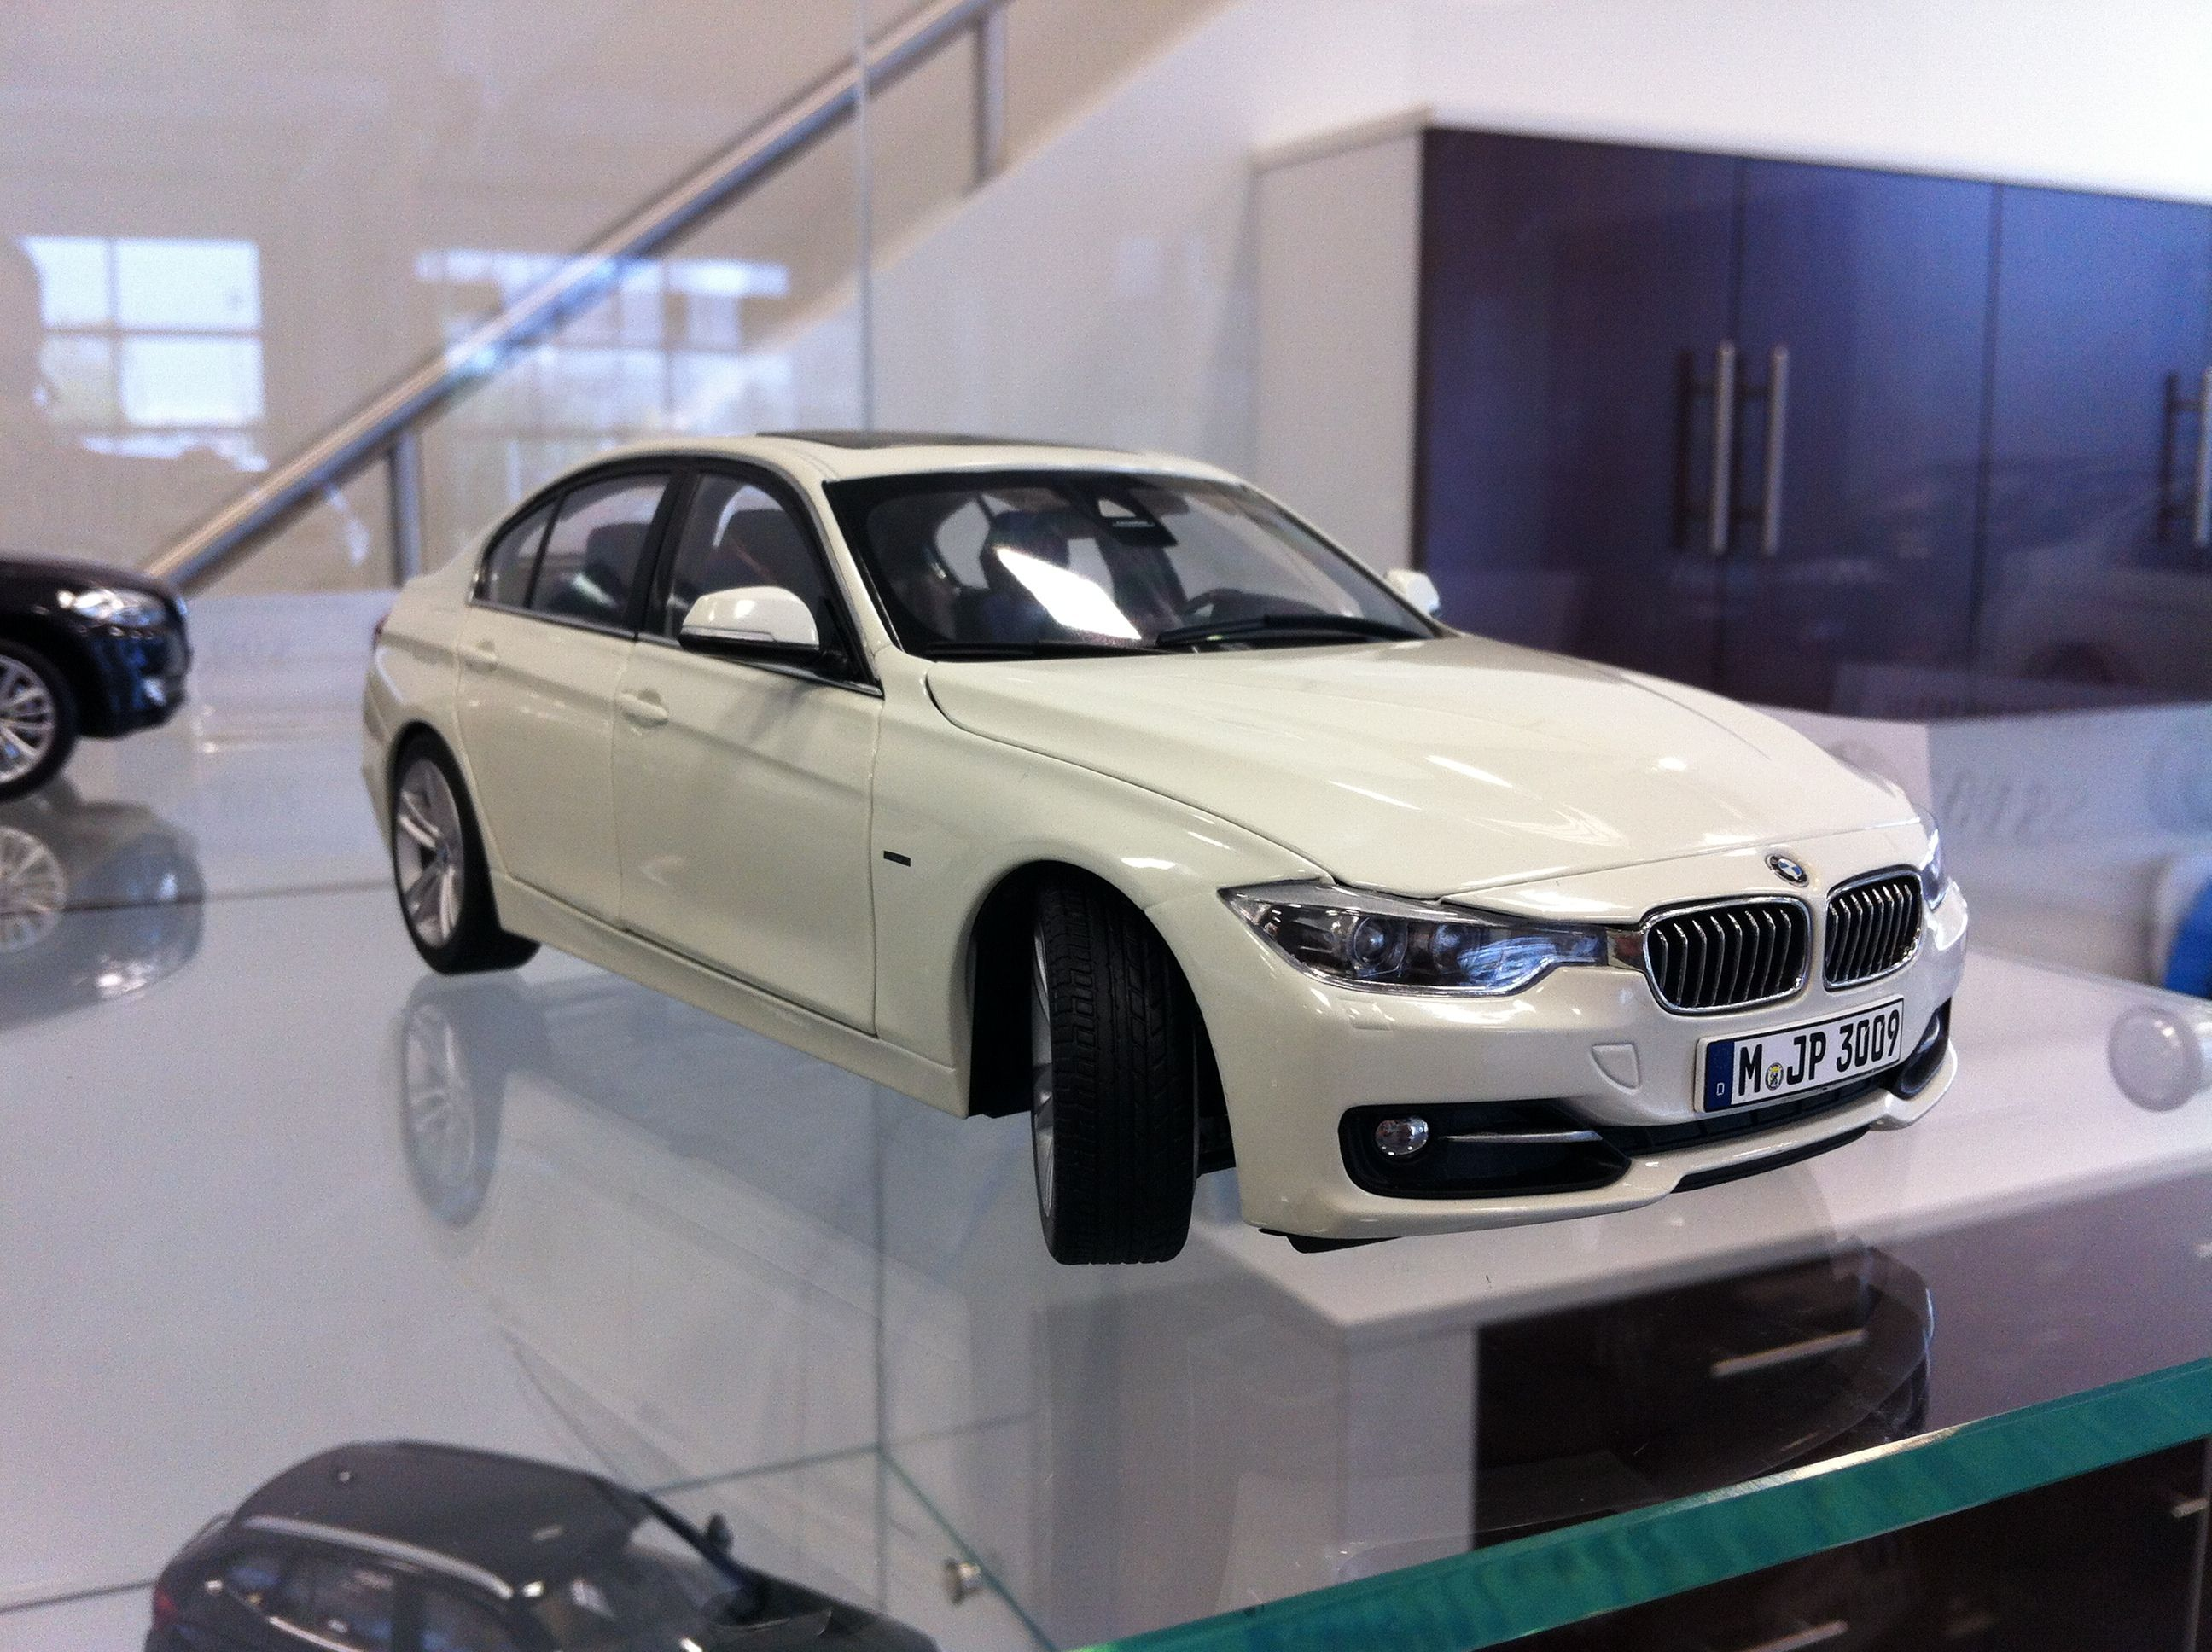 bmw f30 sport 1 18 white bmw accessories pinterest. Black Bedroom Furniture Sets. Home Design Ideas